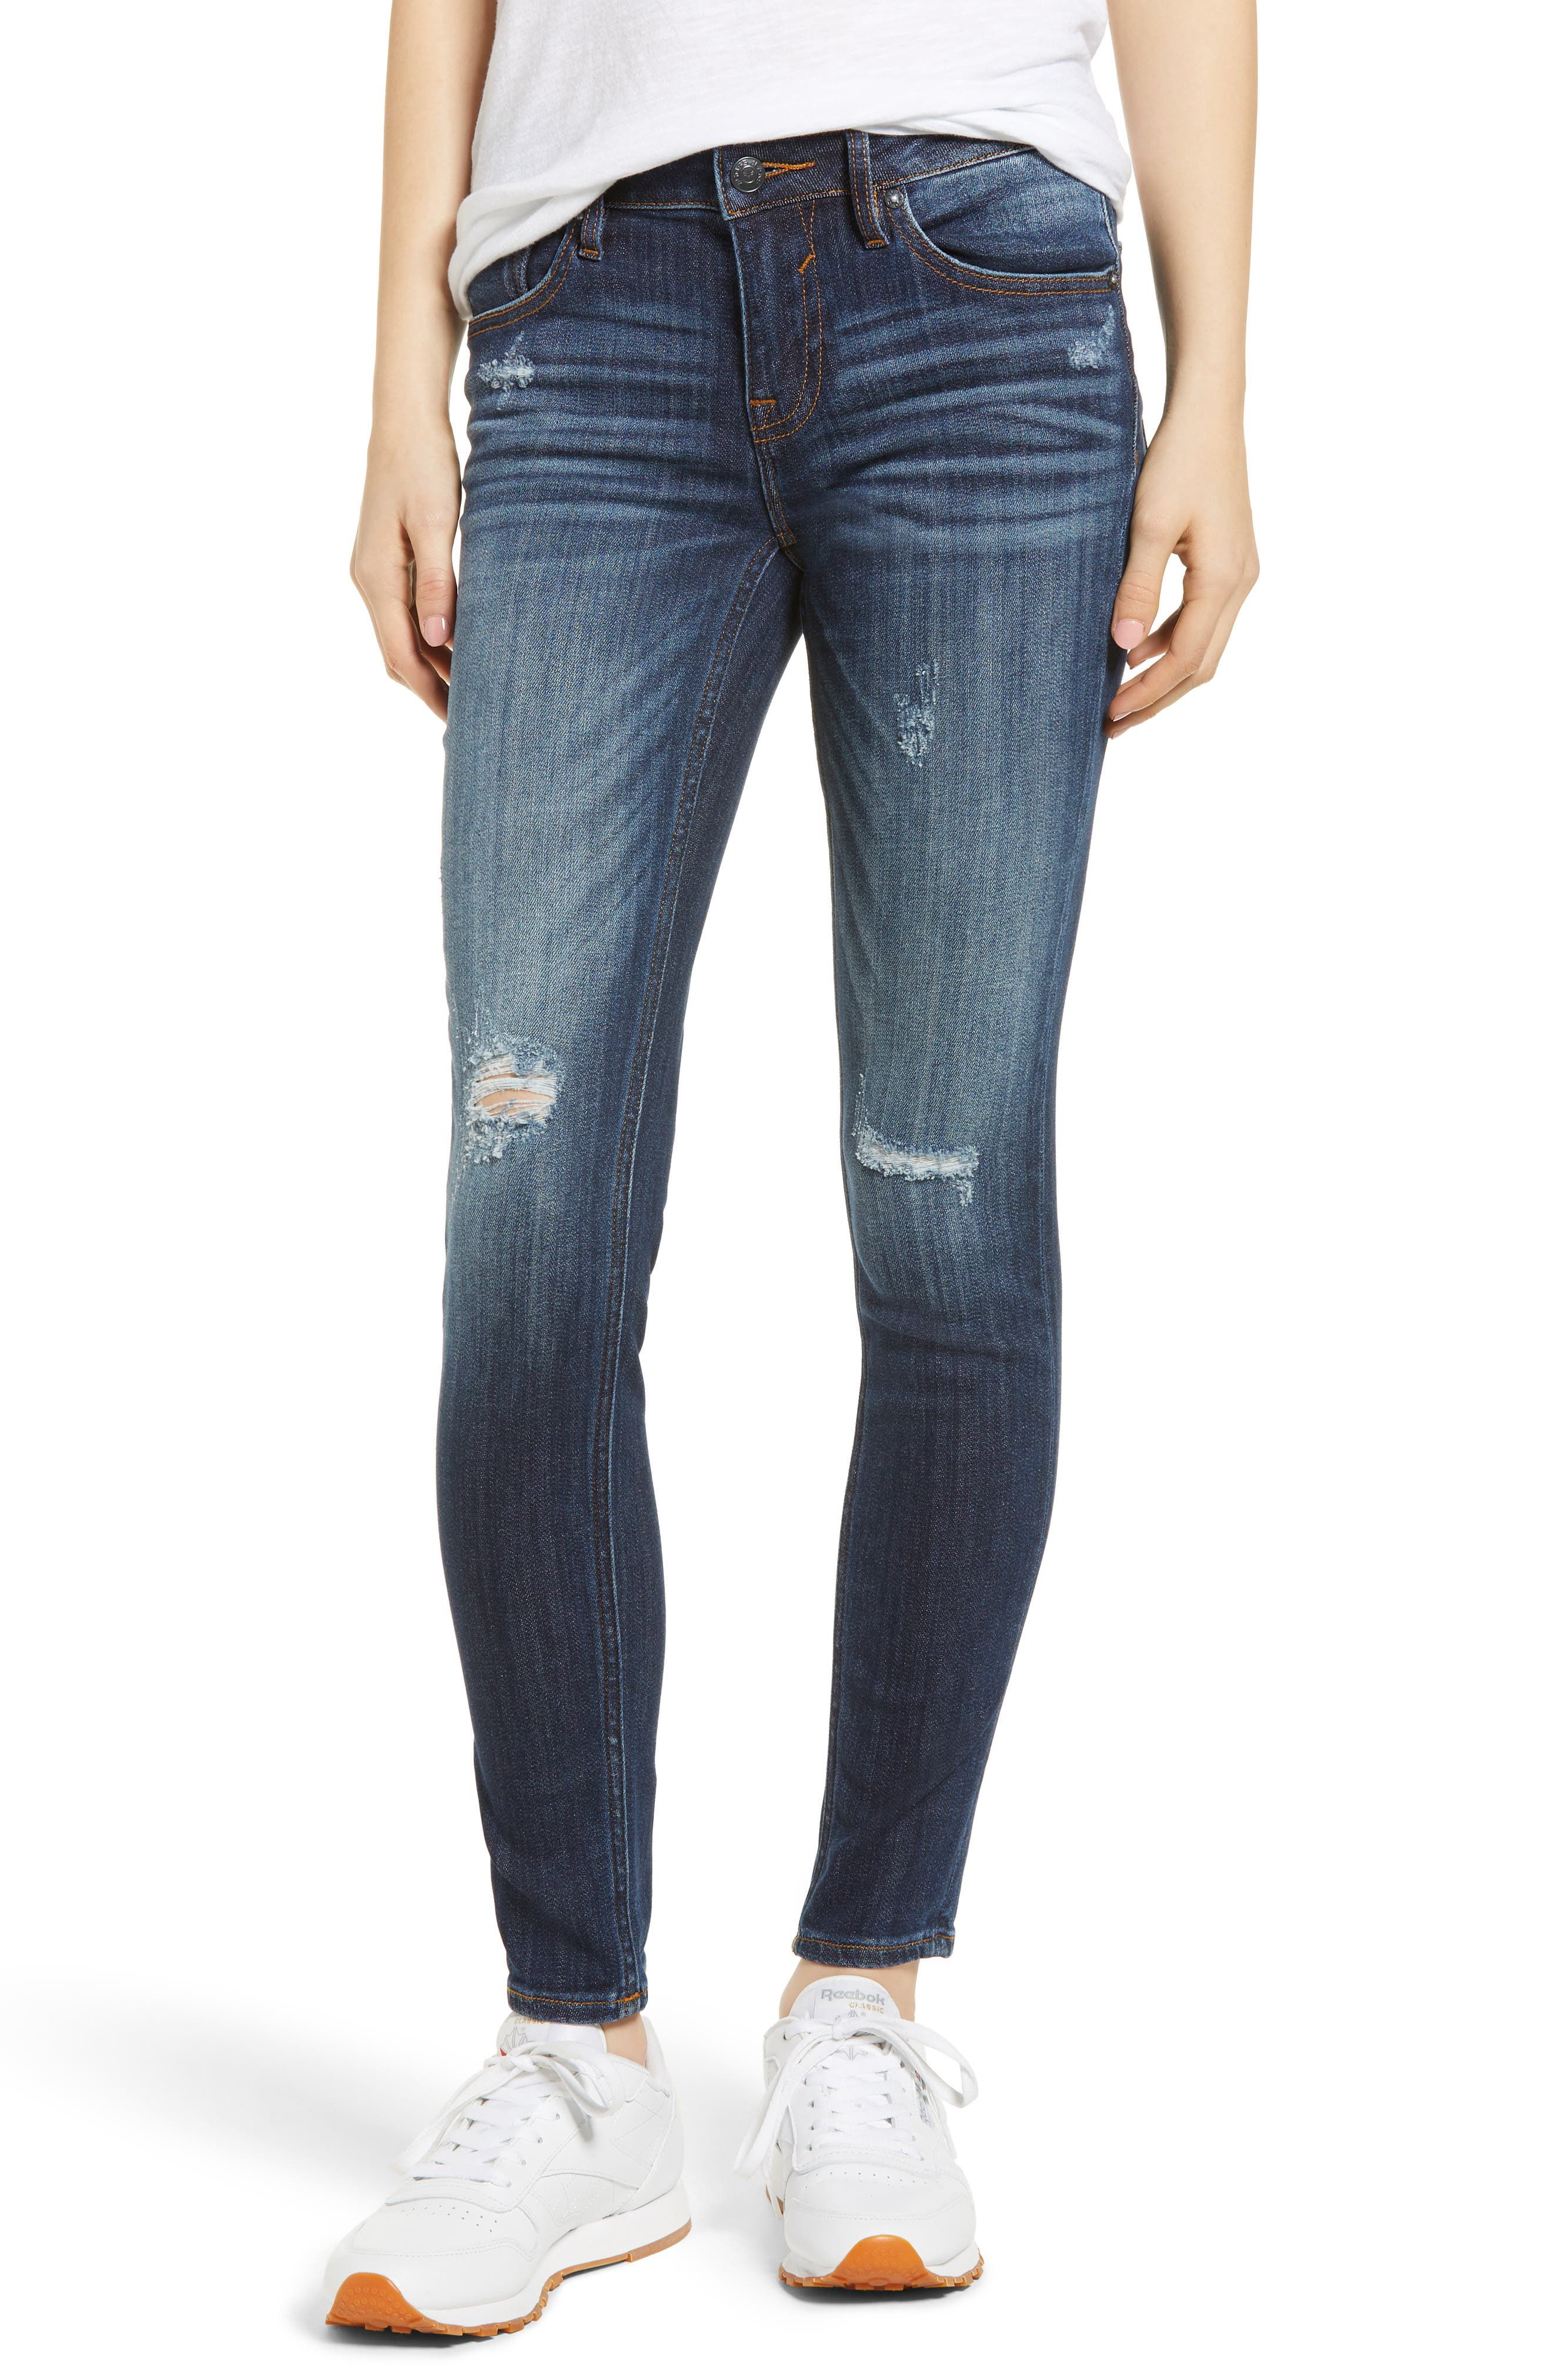 Jagger Ripped Skinny Jeans,                         Main,                         color, 403